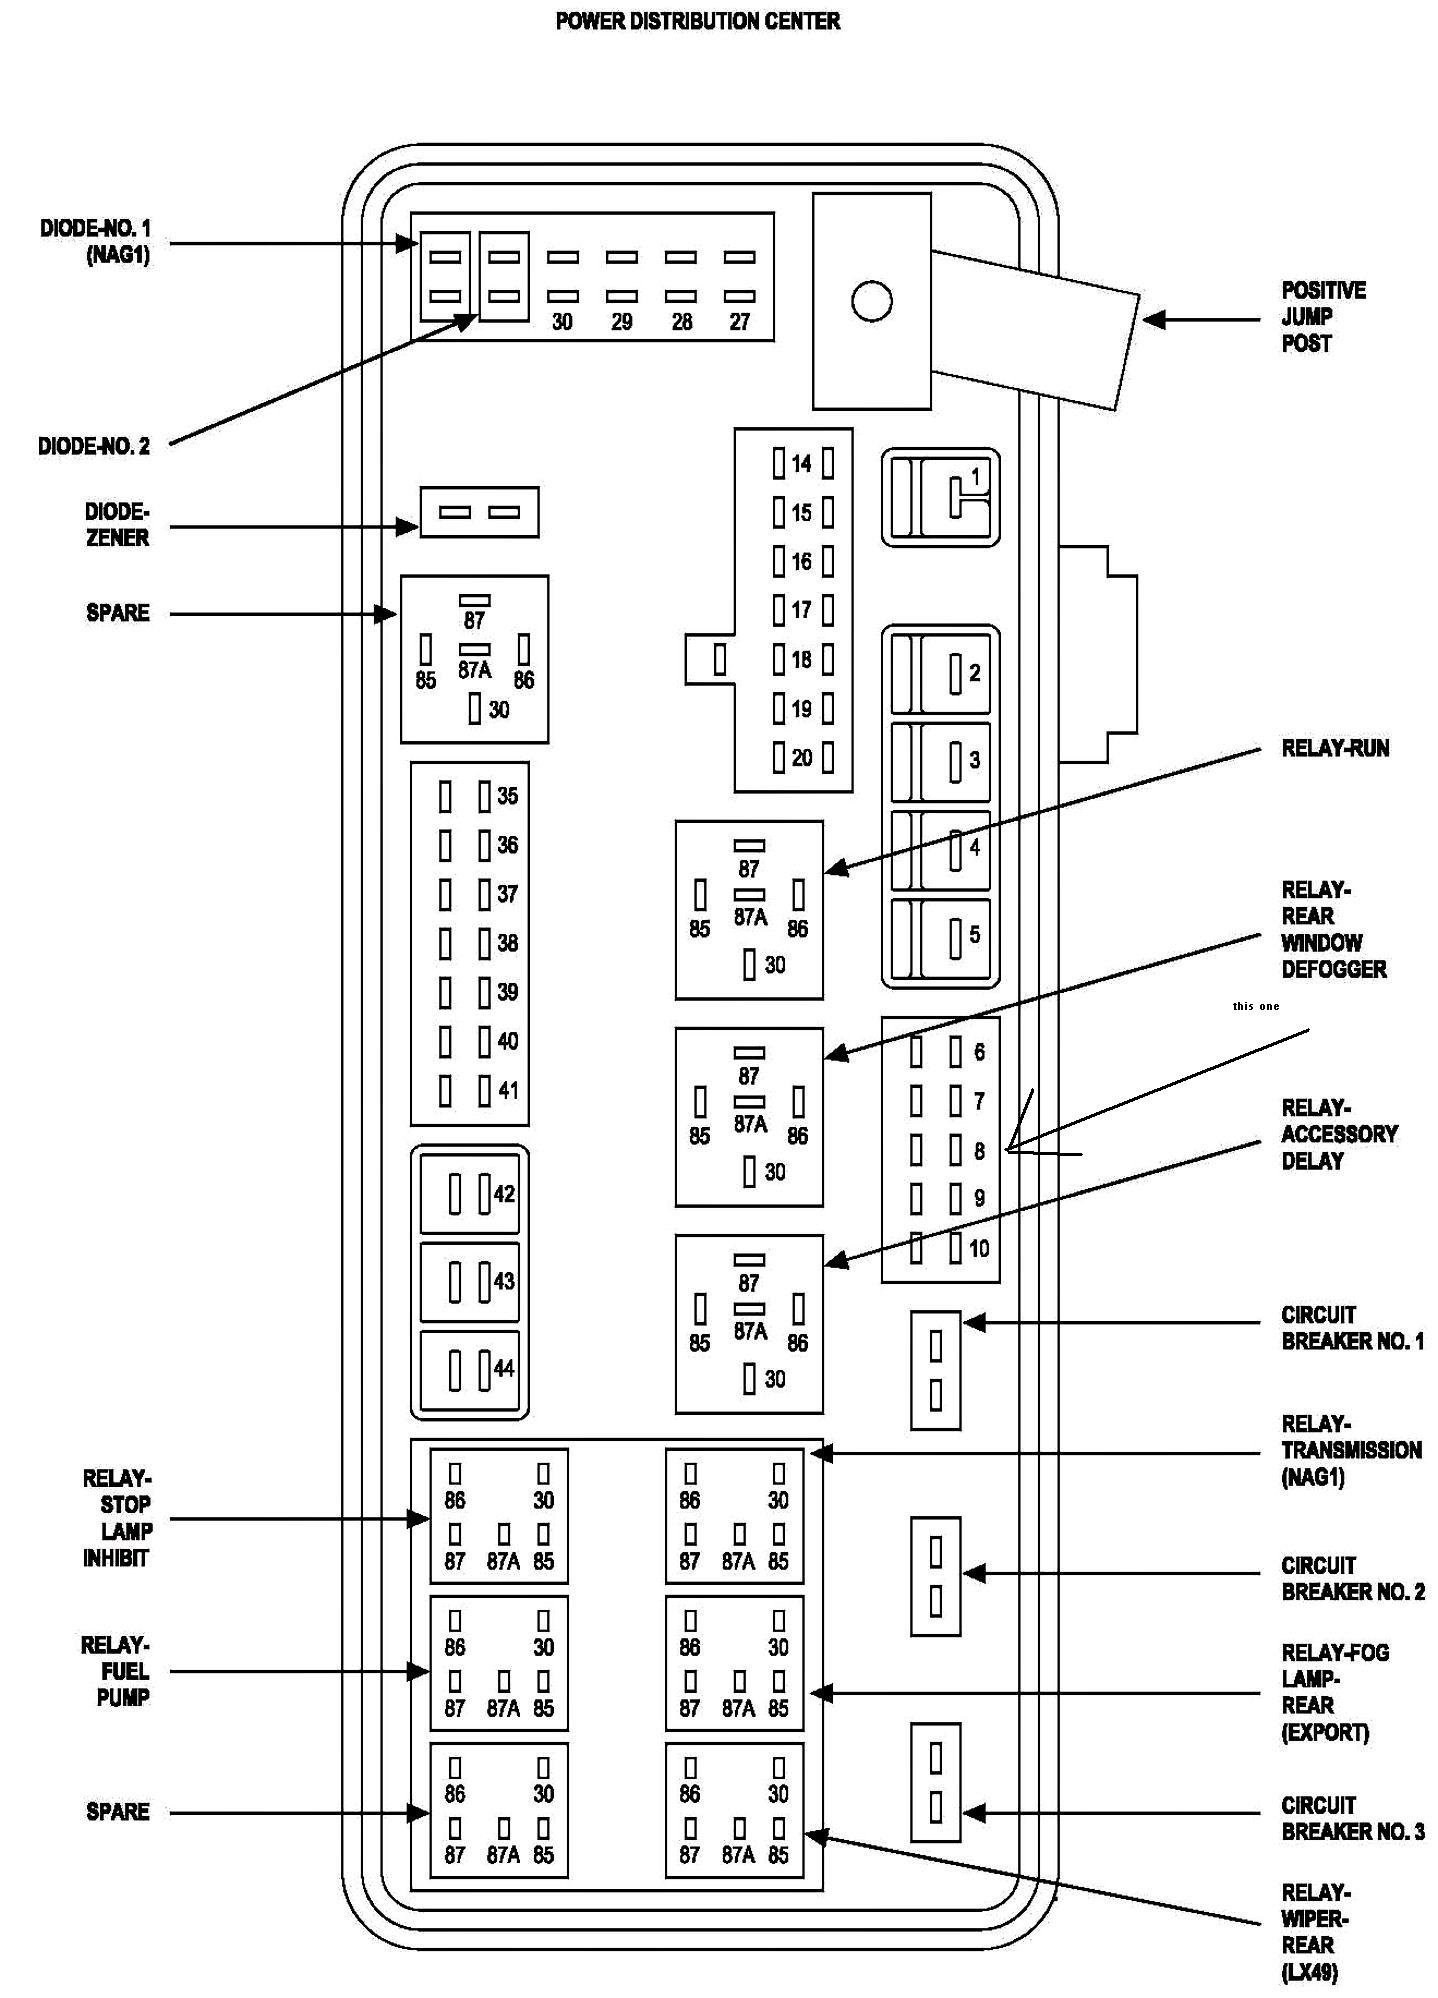 1993 Dakota Fuse Box Diagram | Online Wiring Diagram on color wiring code, bug diagram, color sensor diagram, color filters diagram, color body diagram,